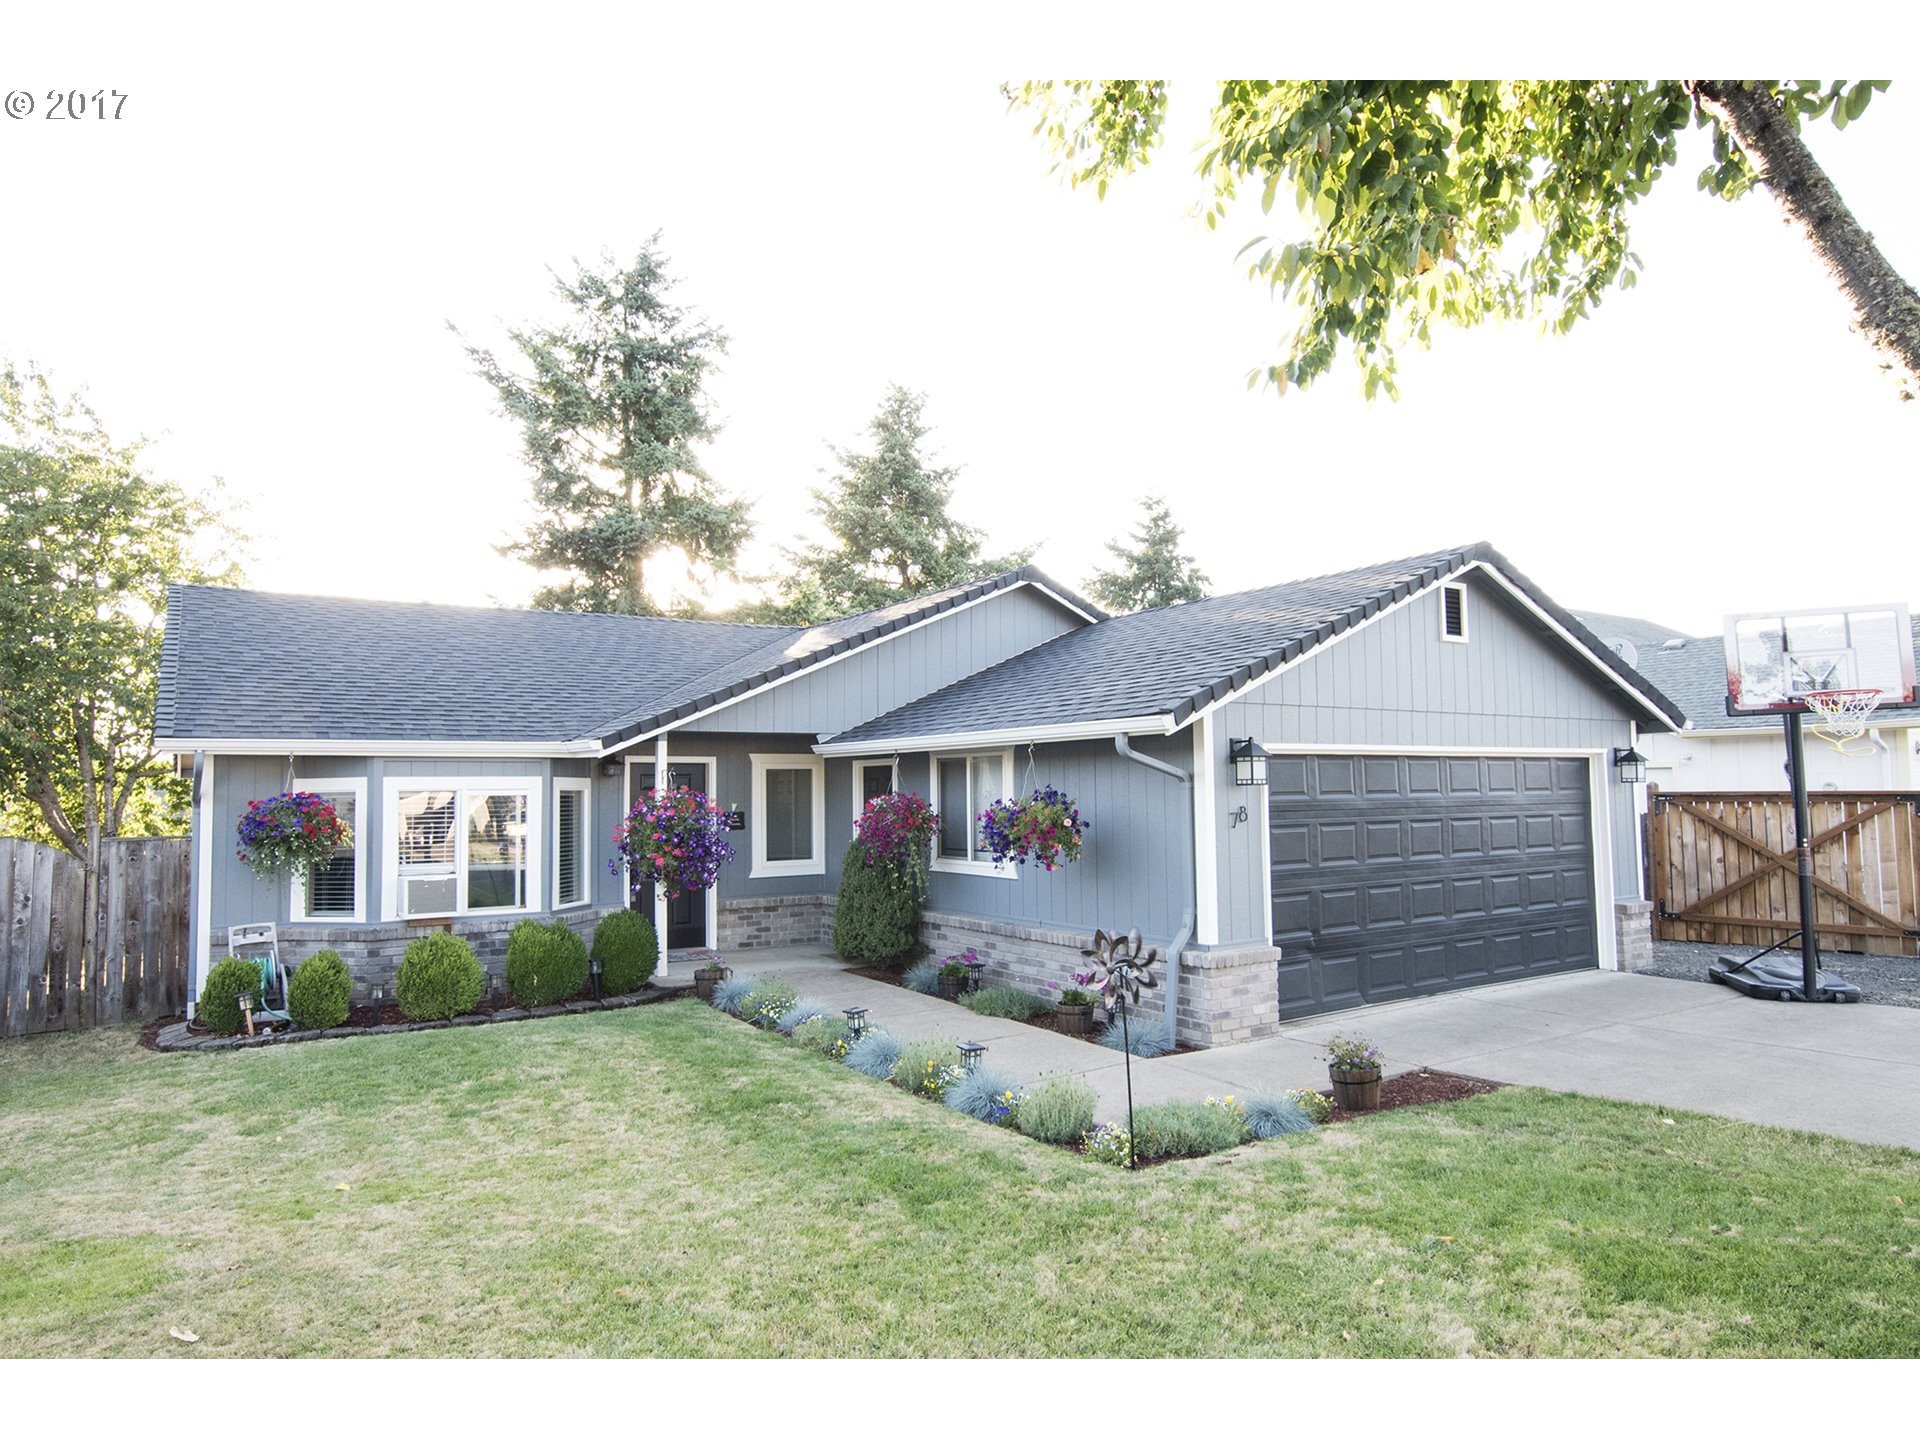 78 ASH GROVE CT, Creswell, OR 97426